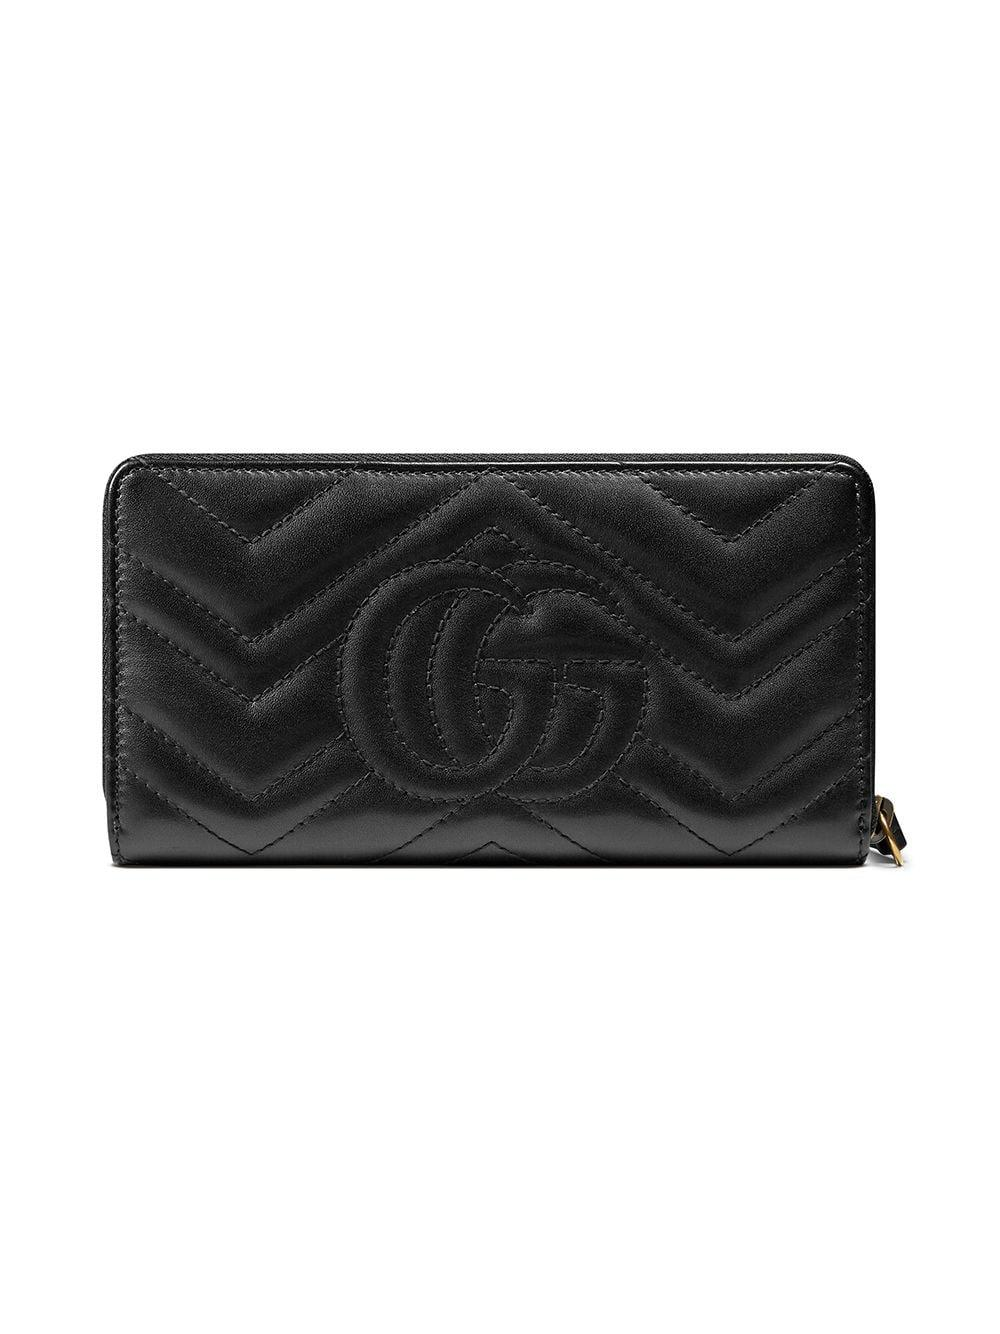 8a09e3b9c485 Lyst - Gucci GG Marmont Zip Around Wallet in Black